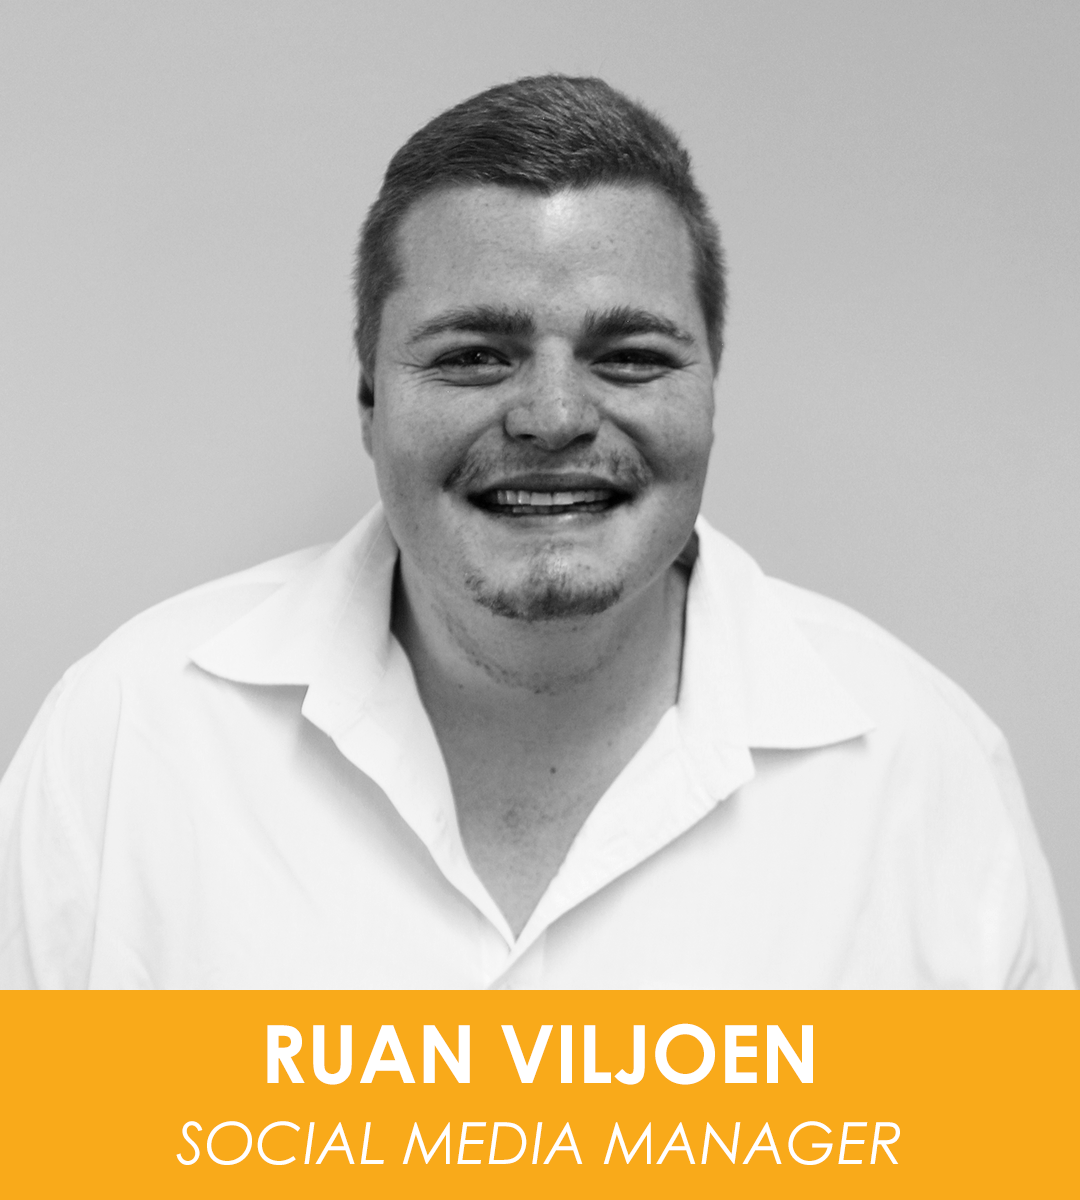 Image of Ruan